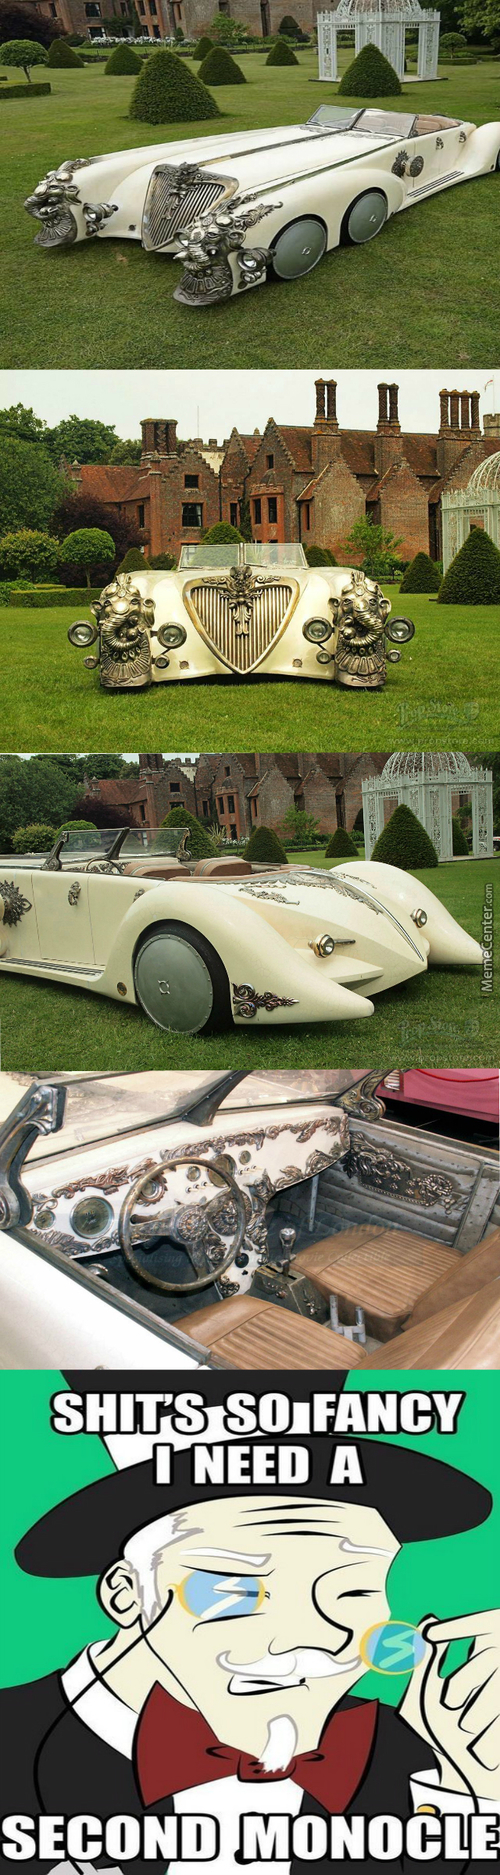 "The Nautilus Car By Peugeot For ""league Of Extraordinary Gentlemen"" As Advertised"